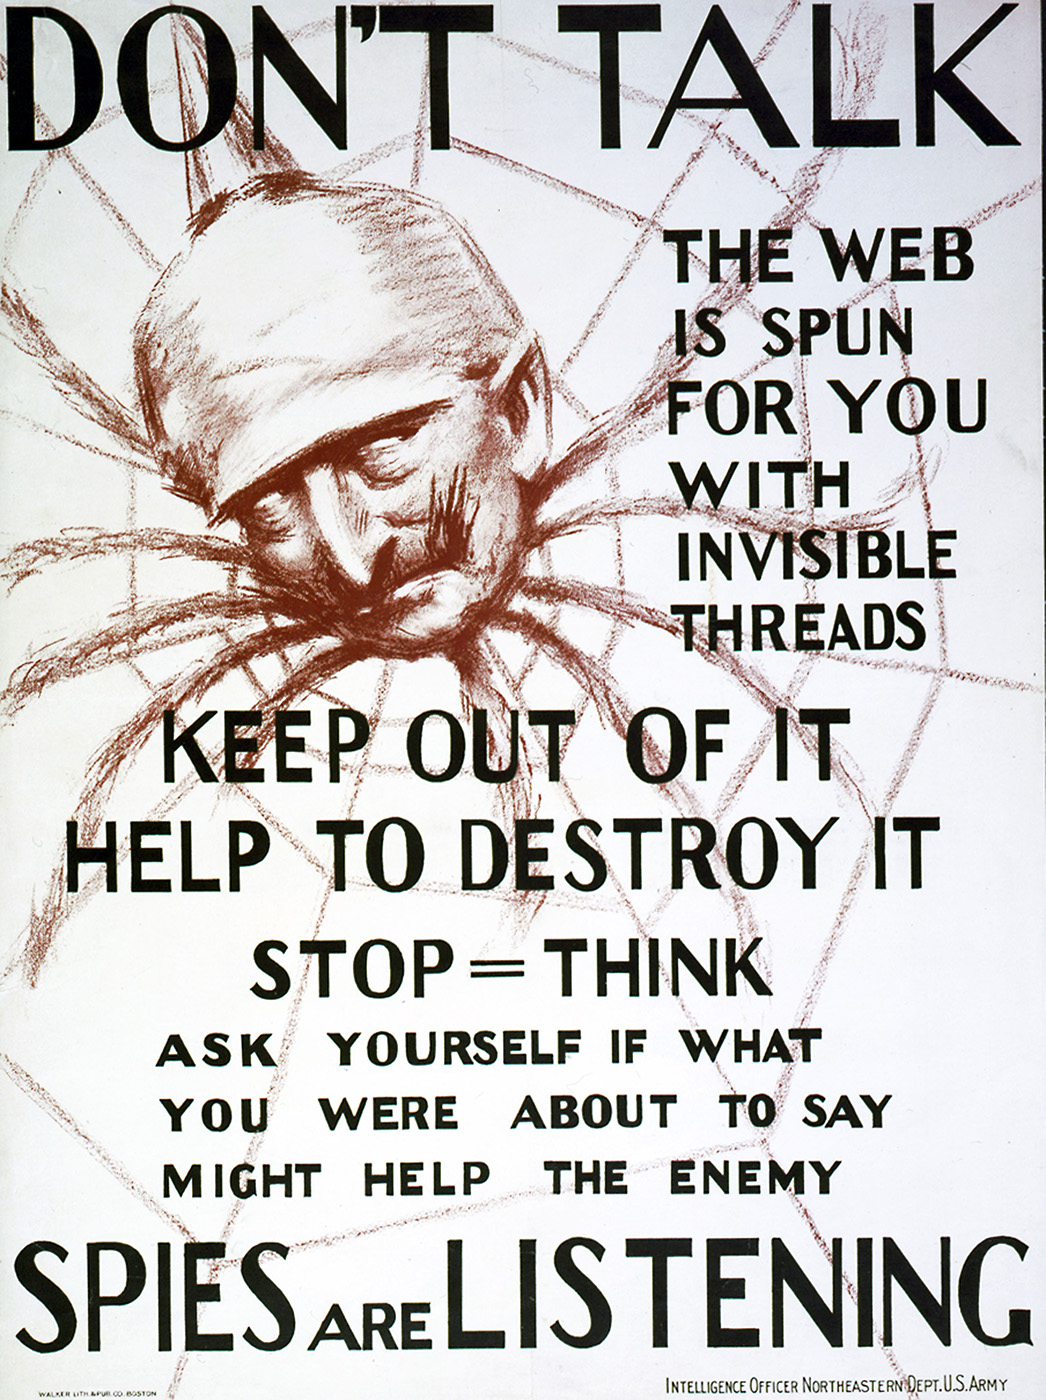 World War I propaganda poster from the US intelligence office 'Don't talk, the web is spun for you with invisible threads, keep out of it, help to destroy it, spies are listening,' showing Kaiser Wilhelm II as the spider. (Credit: Photo12/UIG/Getty Images)